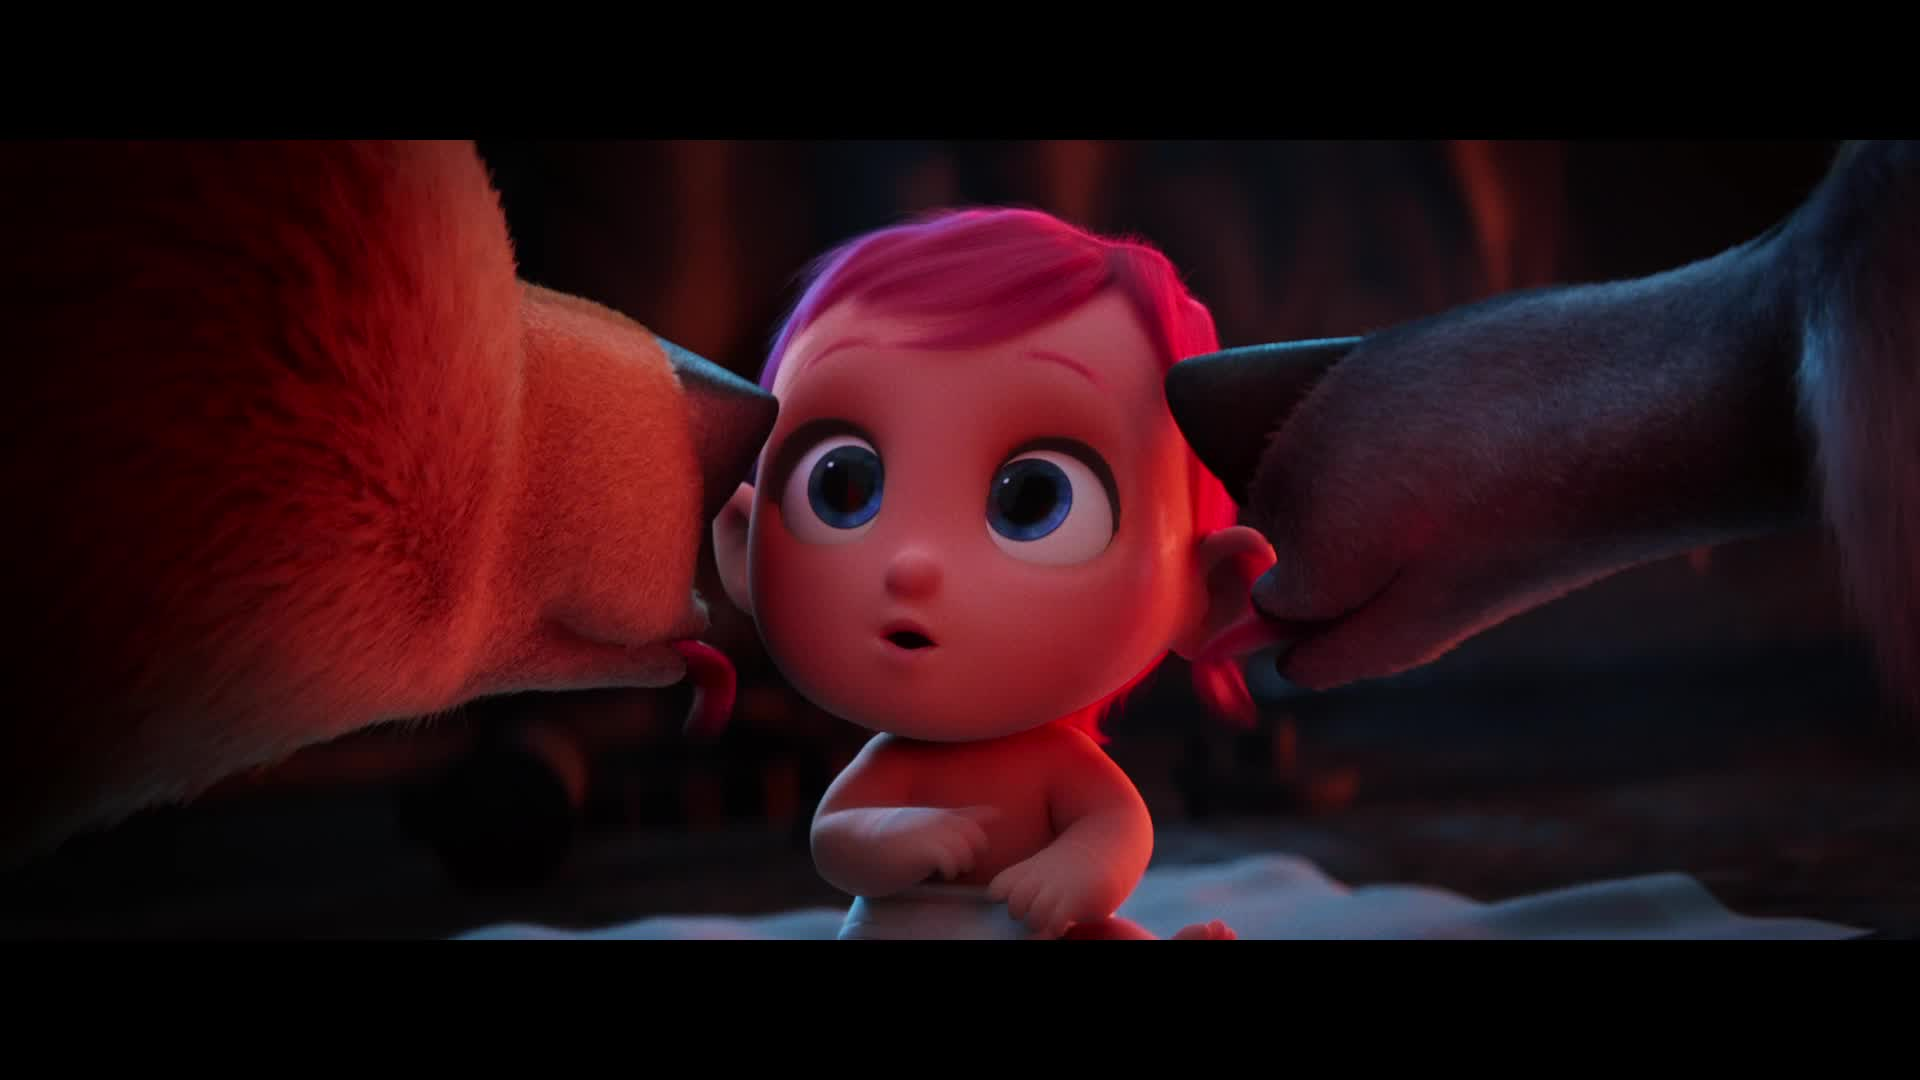 With you Animated animated little girl naked good topic